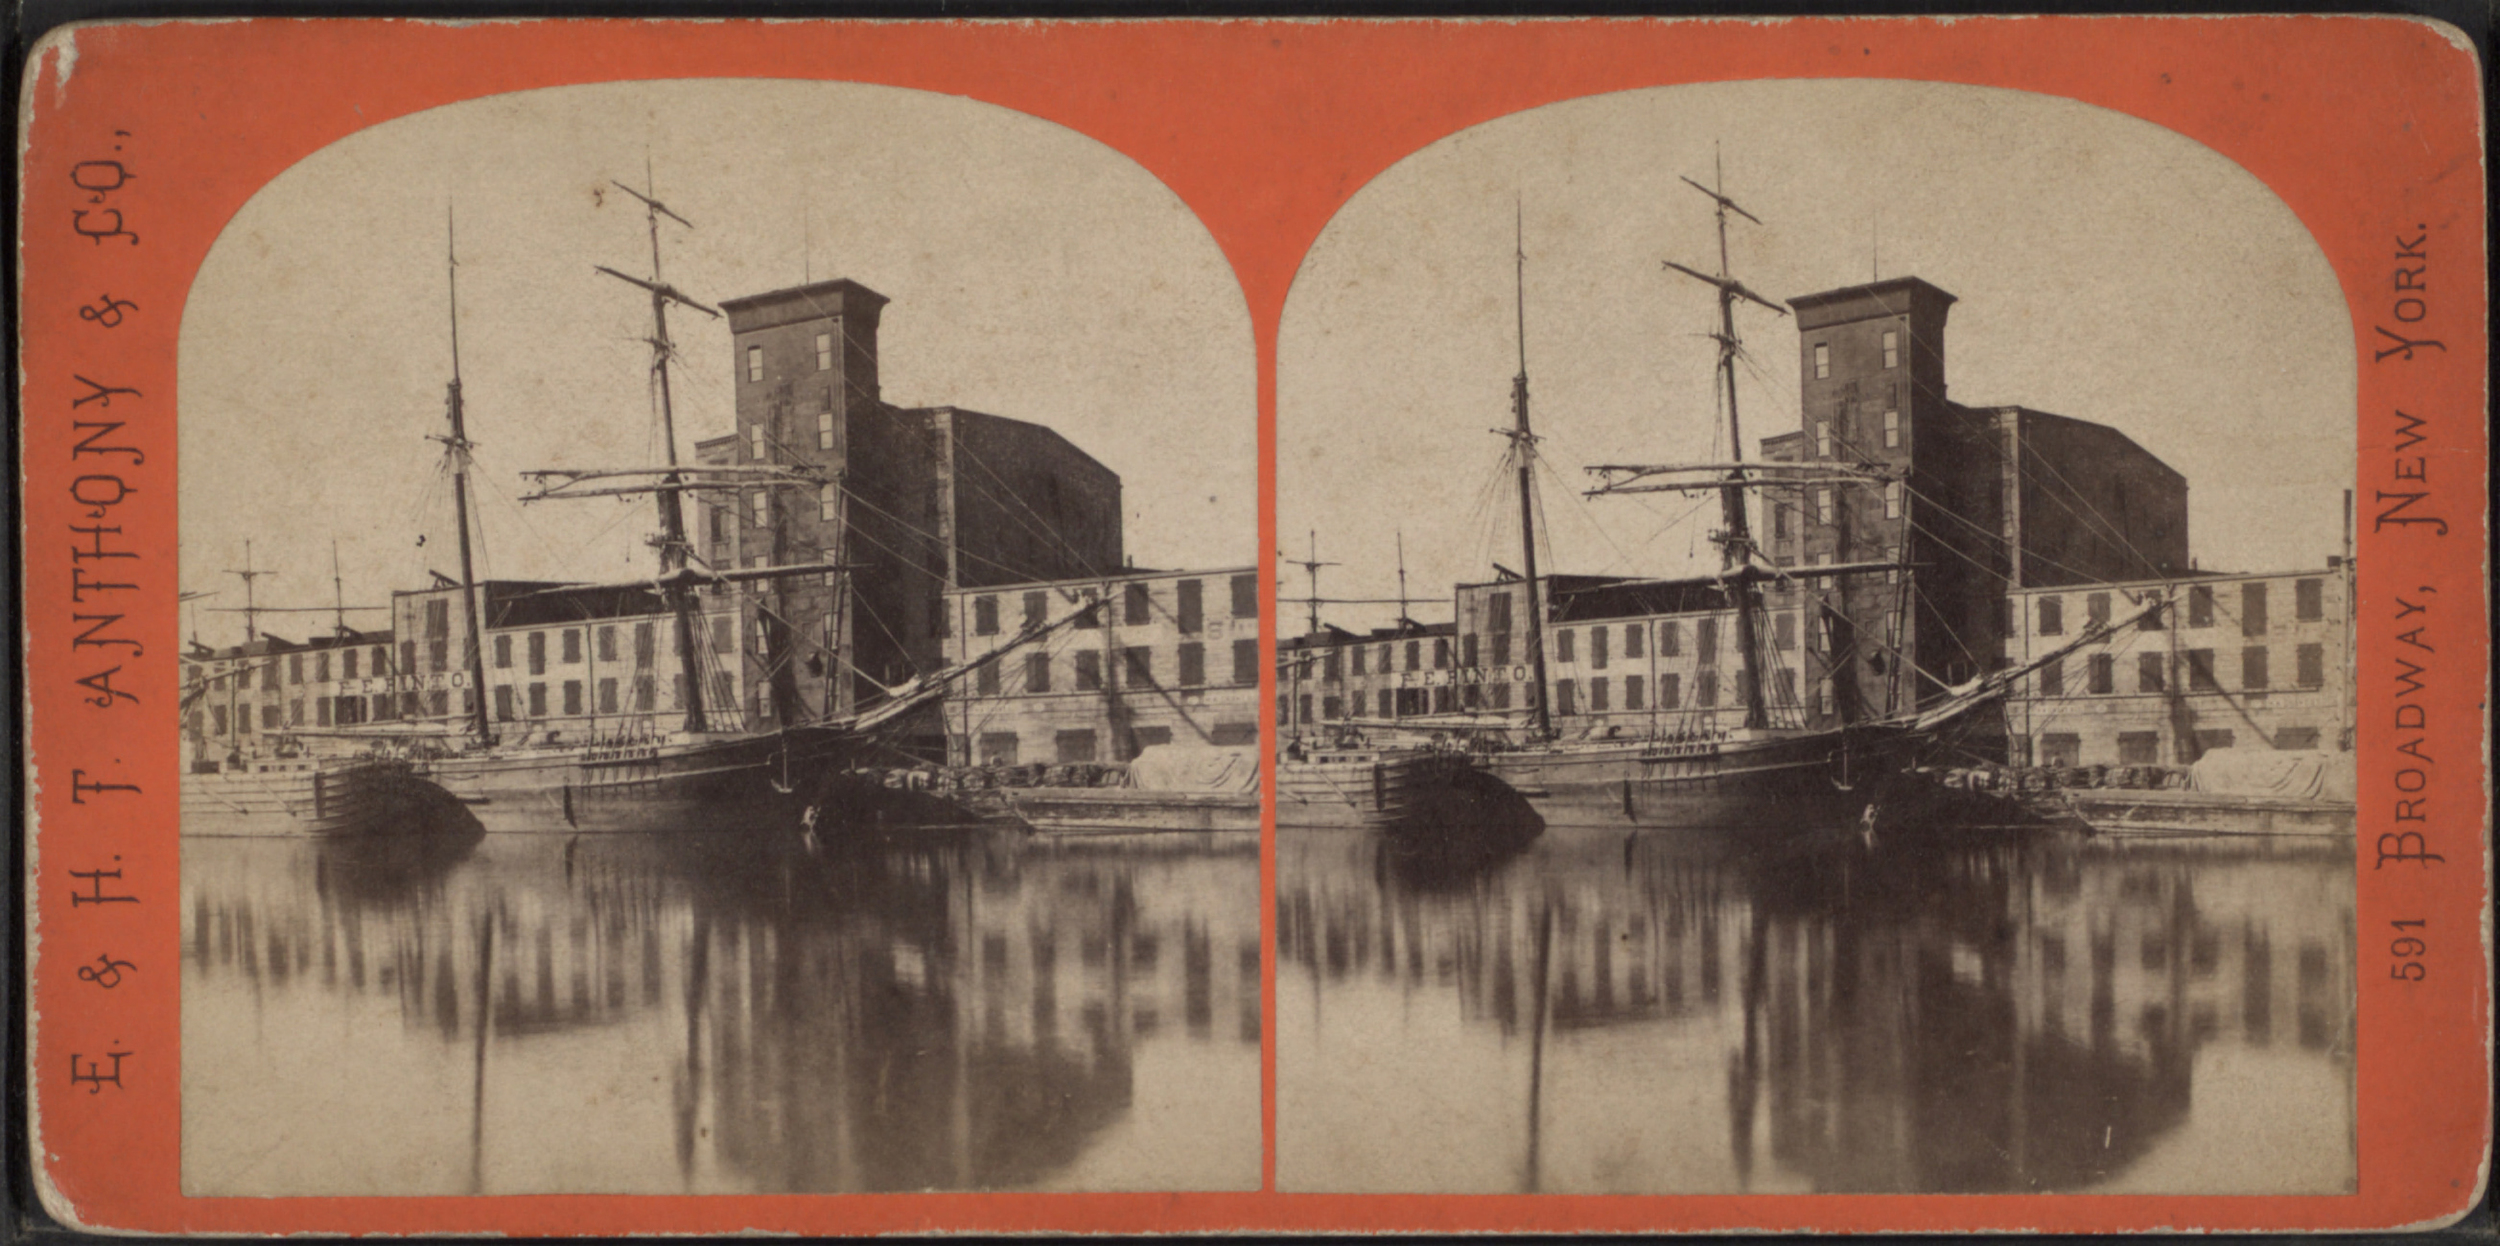 Atlantic_Basin_2schooners+grain elevato_Dennis_collection_of_stereoscopic_views.jpg